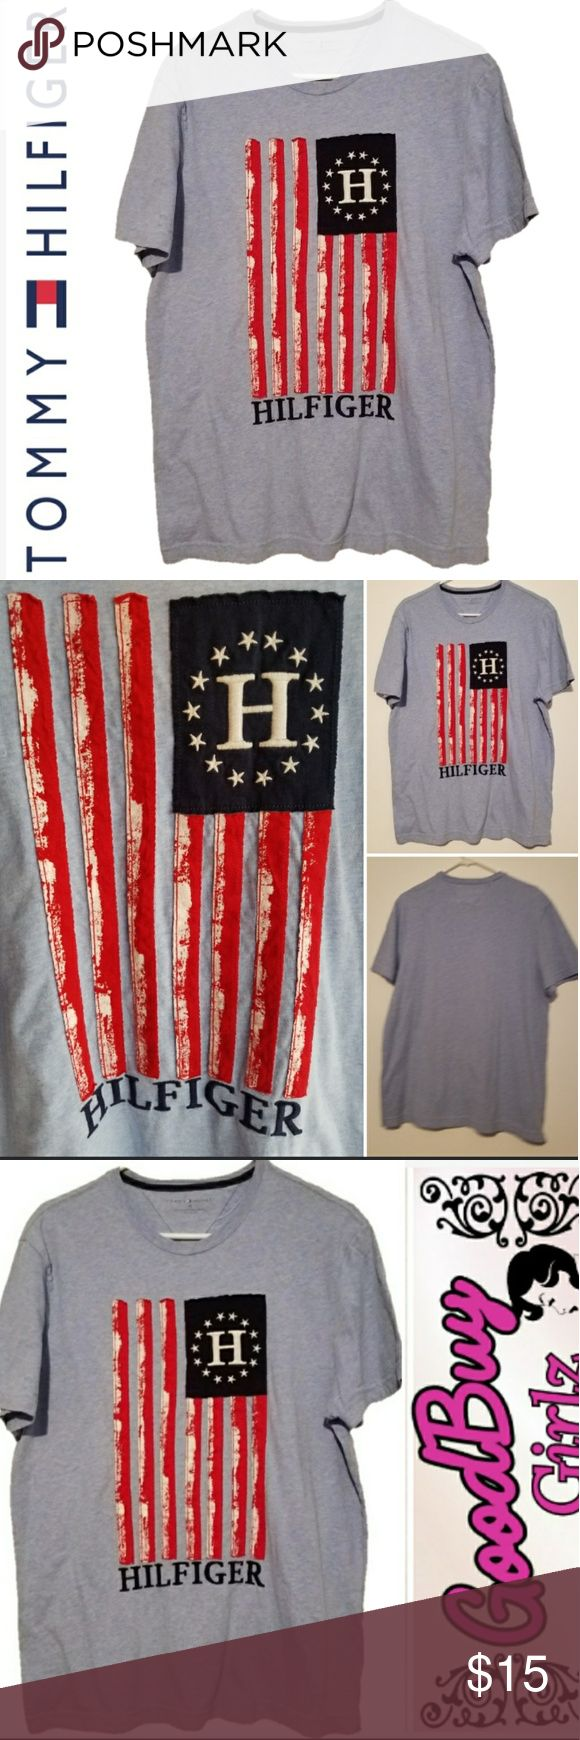 """Tommy Hilfiger Blue Flag Aplique Tee Americana design vertical flag aplique tee in a soft blue color with red white stripes and the """"H"""" surrounded by stars and the Hilfiger name below. Excellent used condition, no rips, holes, tears. Tommy Hilfiger Shirts Tees - Short Sleeve"""